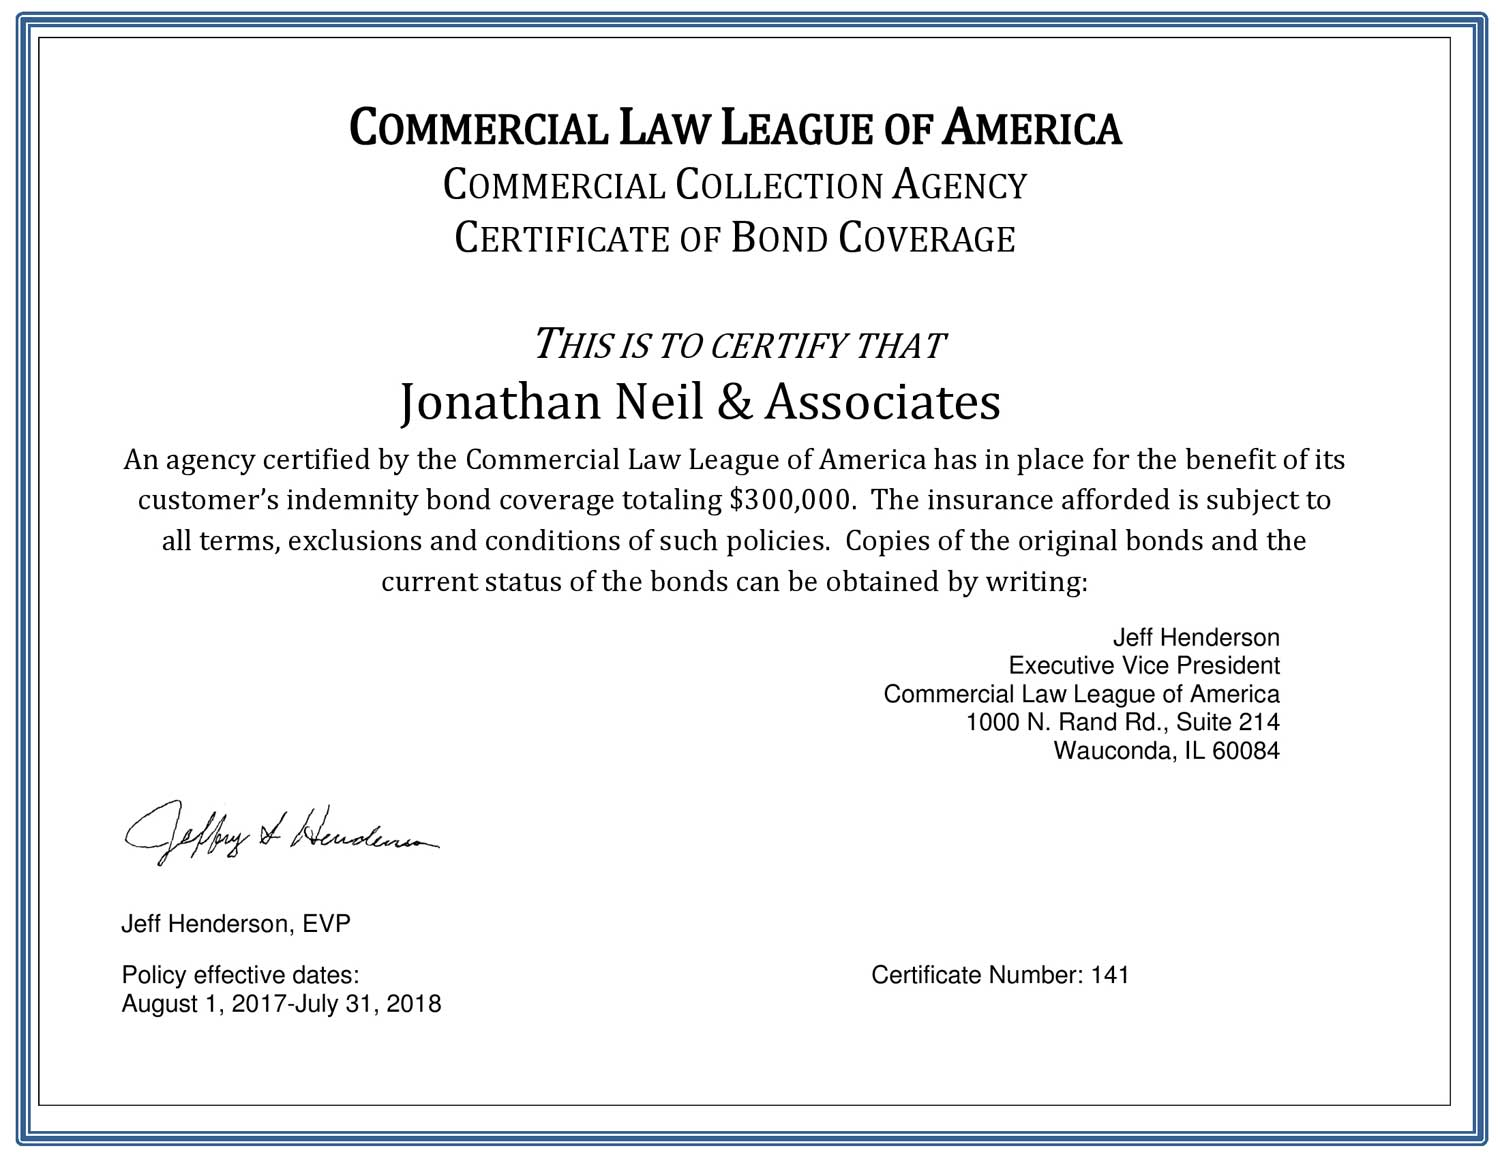 Commercial Law League of America, Certificate of Bond Coverage